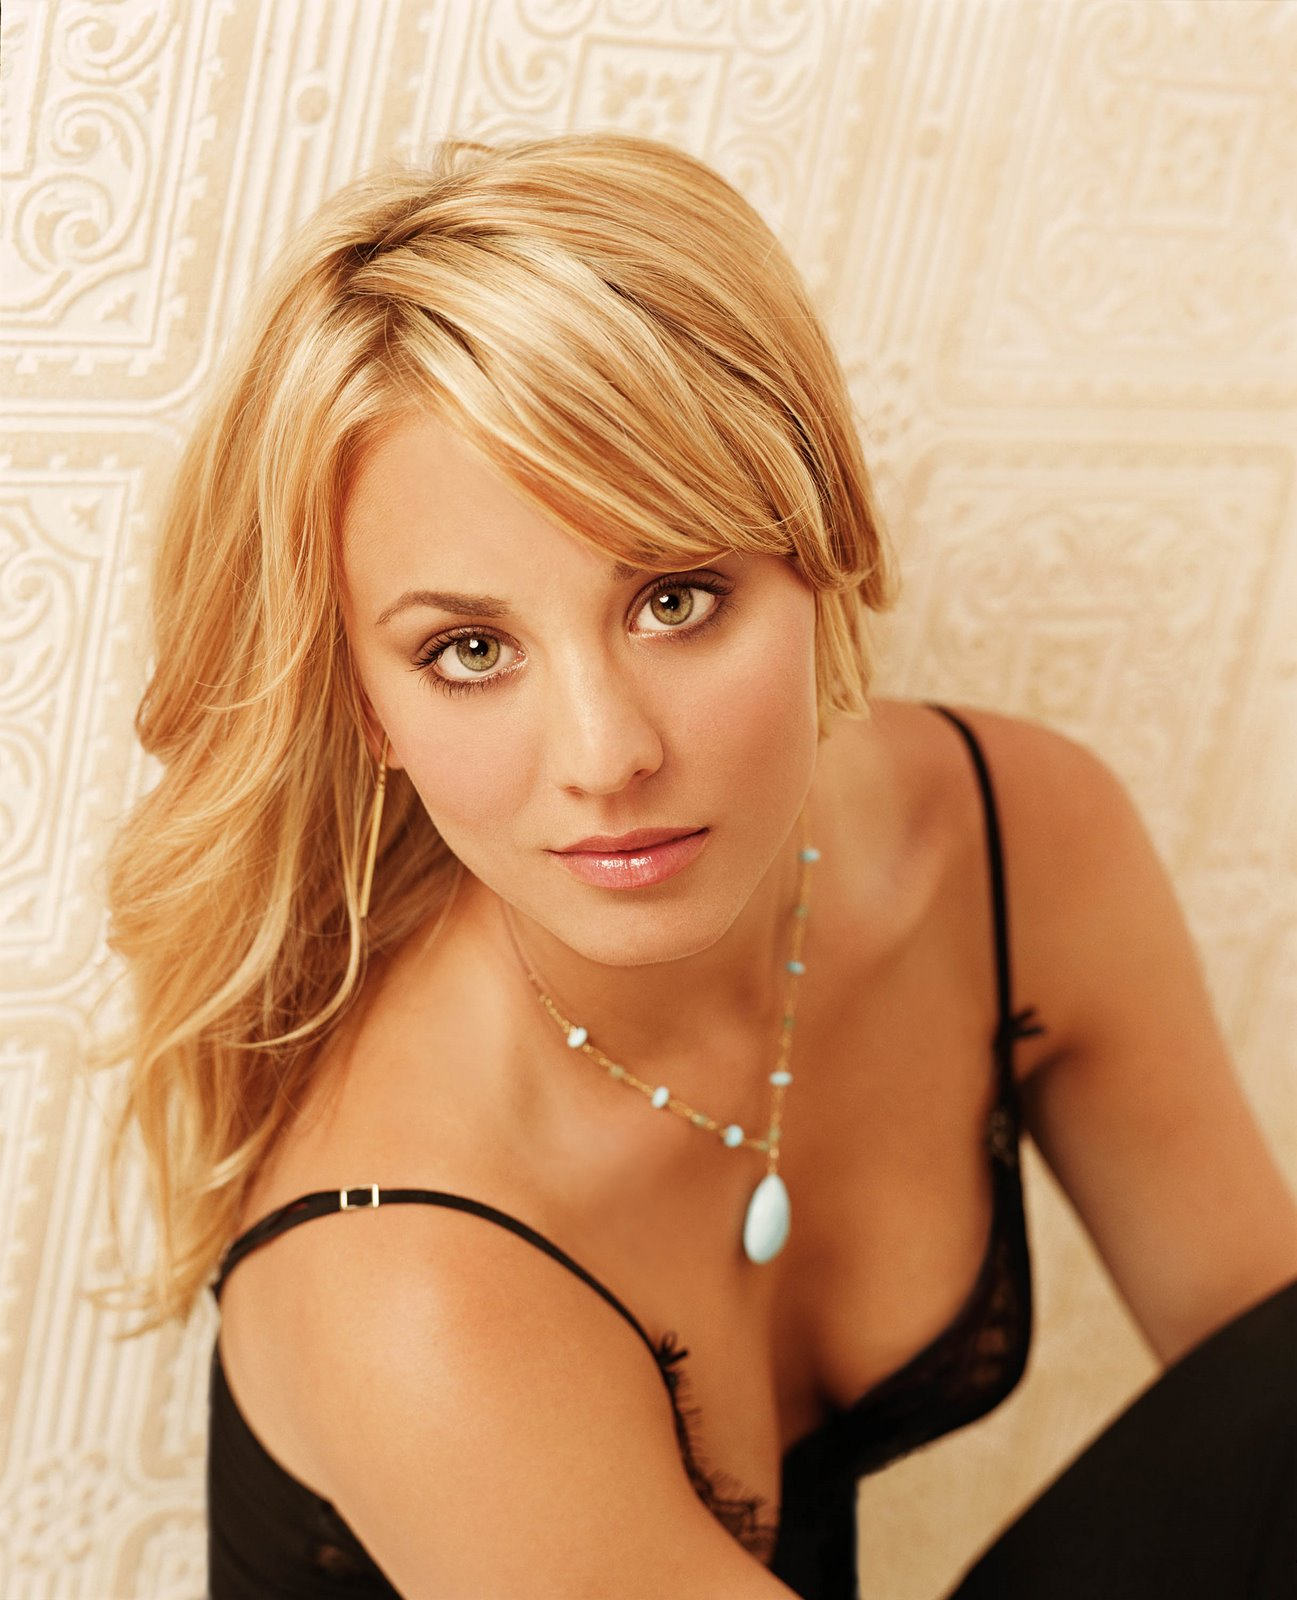 Mixentry Hot Kaley Christine Cuoco